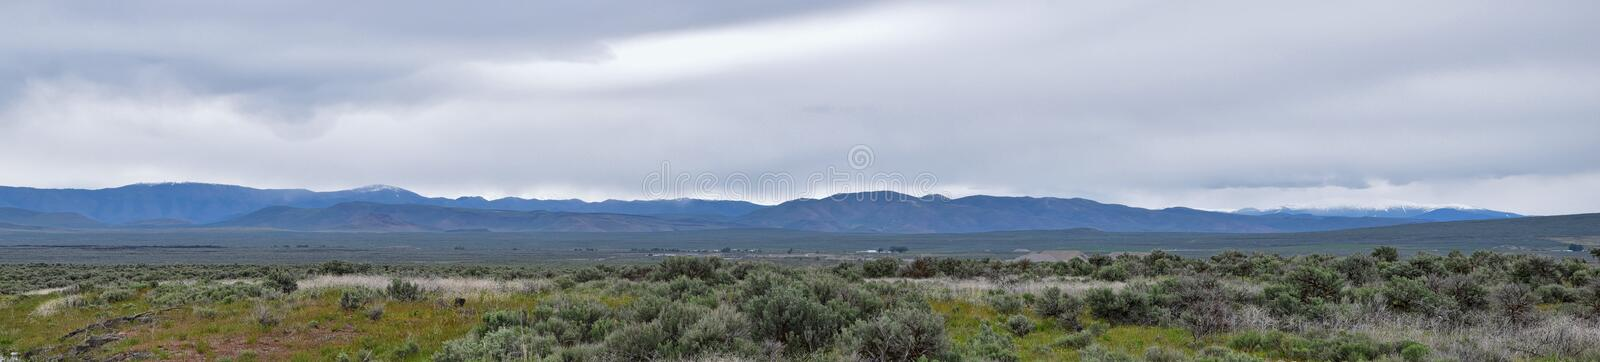 Sawtooth Mountains National Forest Landscape stormy panorama from South headed to Sun Valley, view of rural grazing land, Sagebrus royalty free stock photos